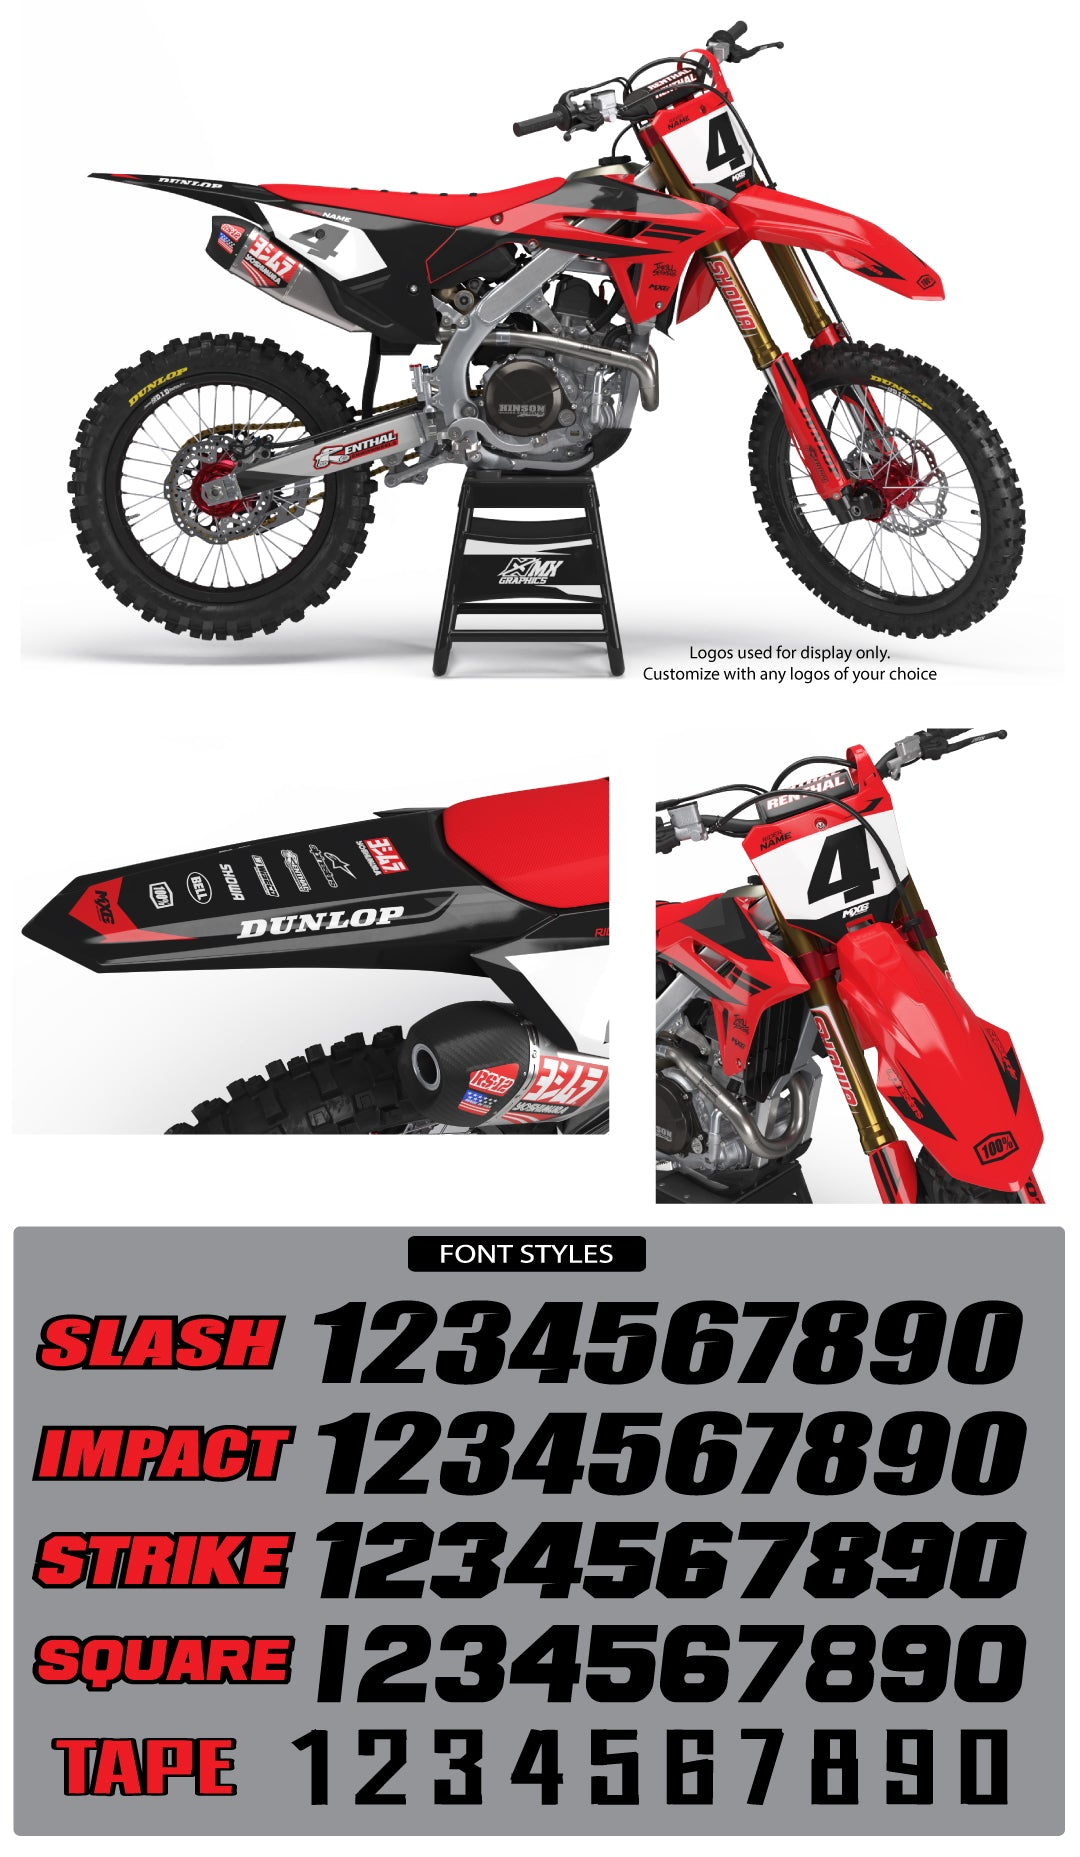 MX20 Graphic Kit for Honda's